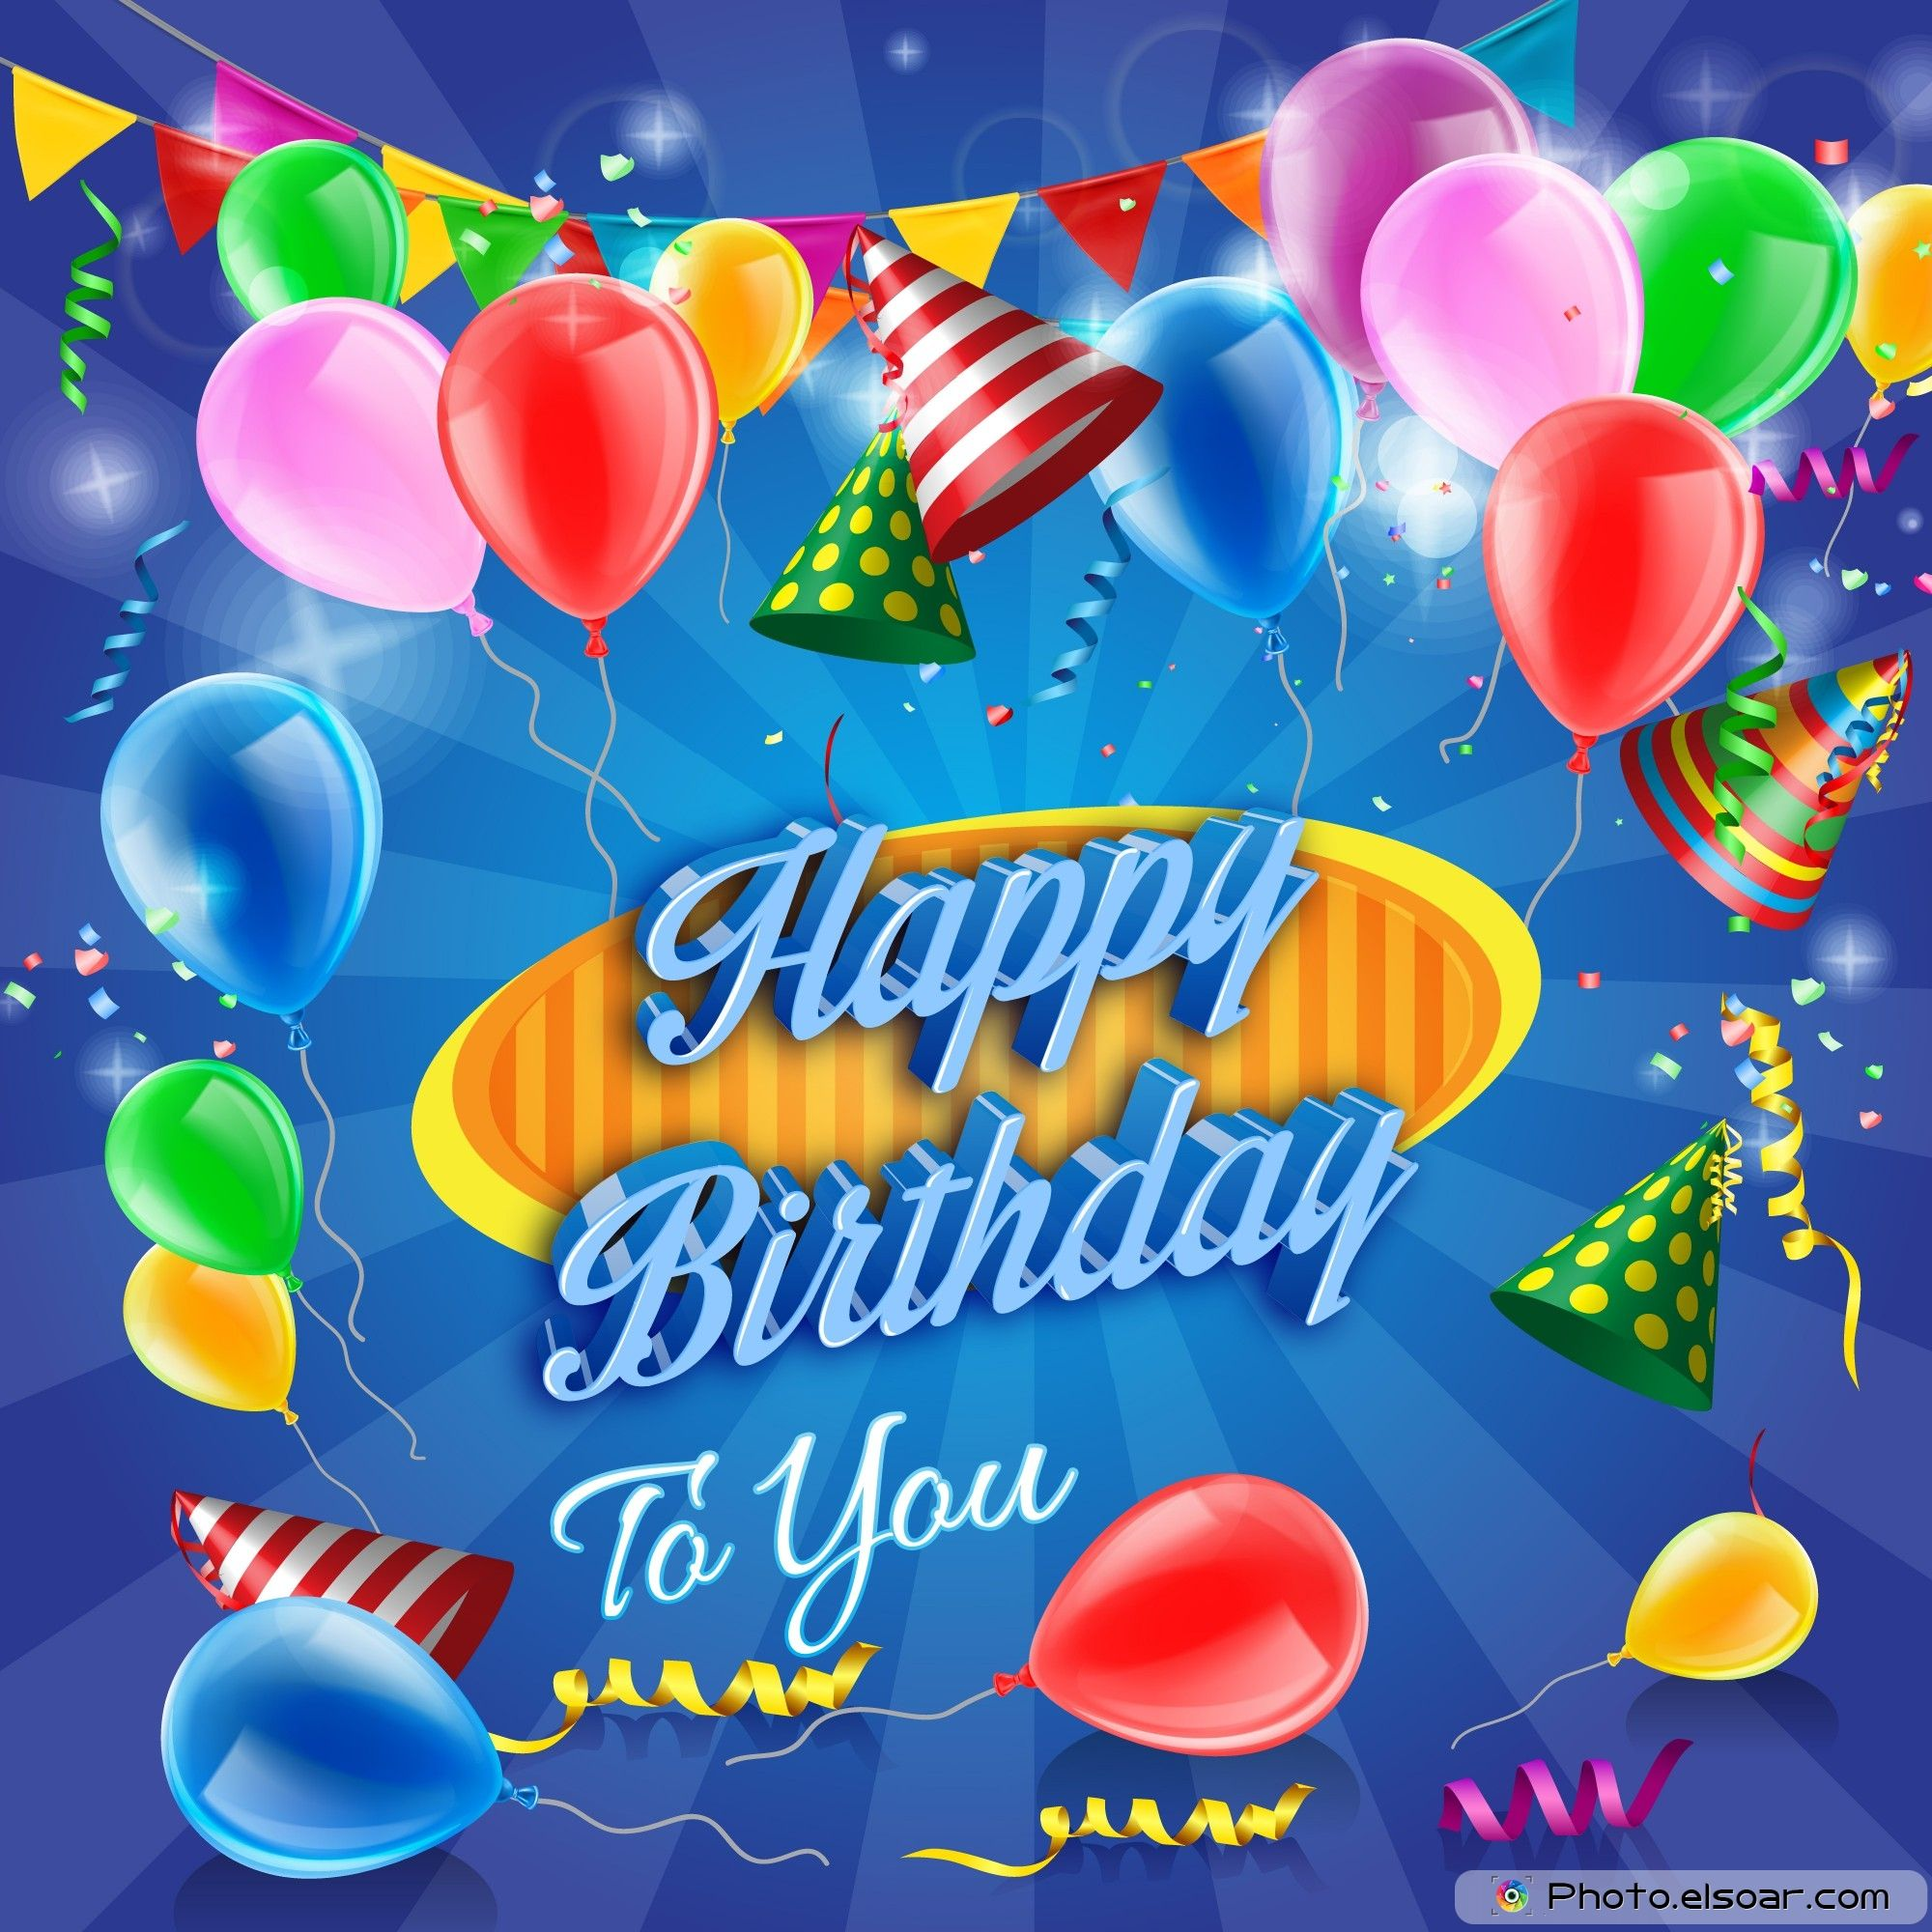 Happy Birthday Images Hd - Google Search